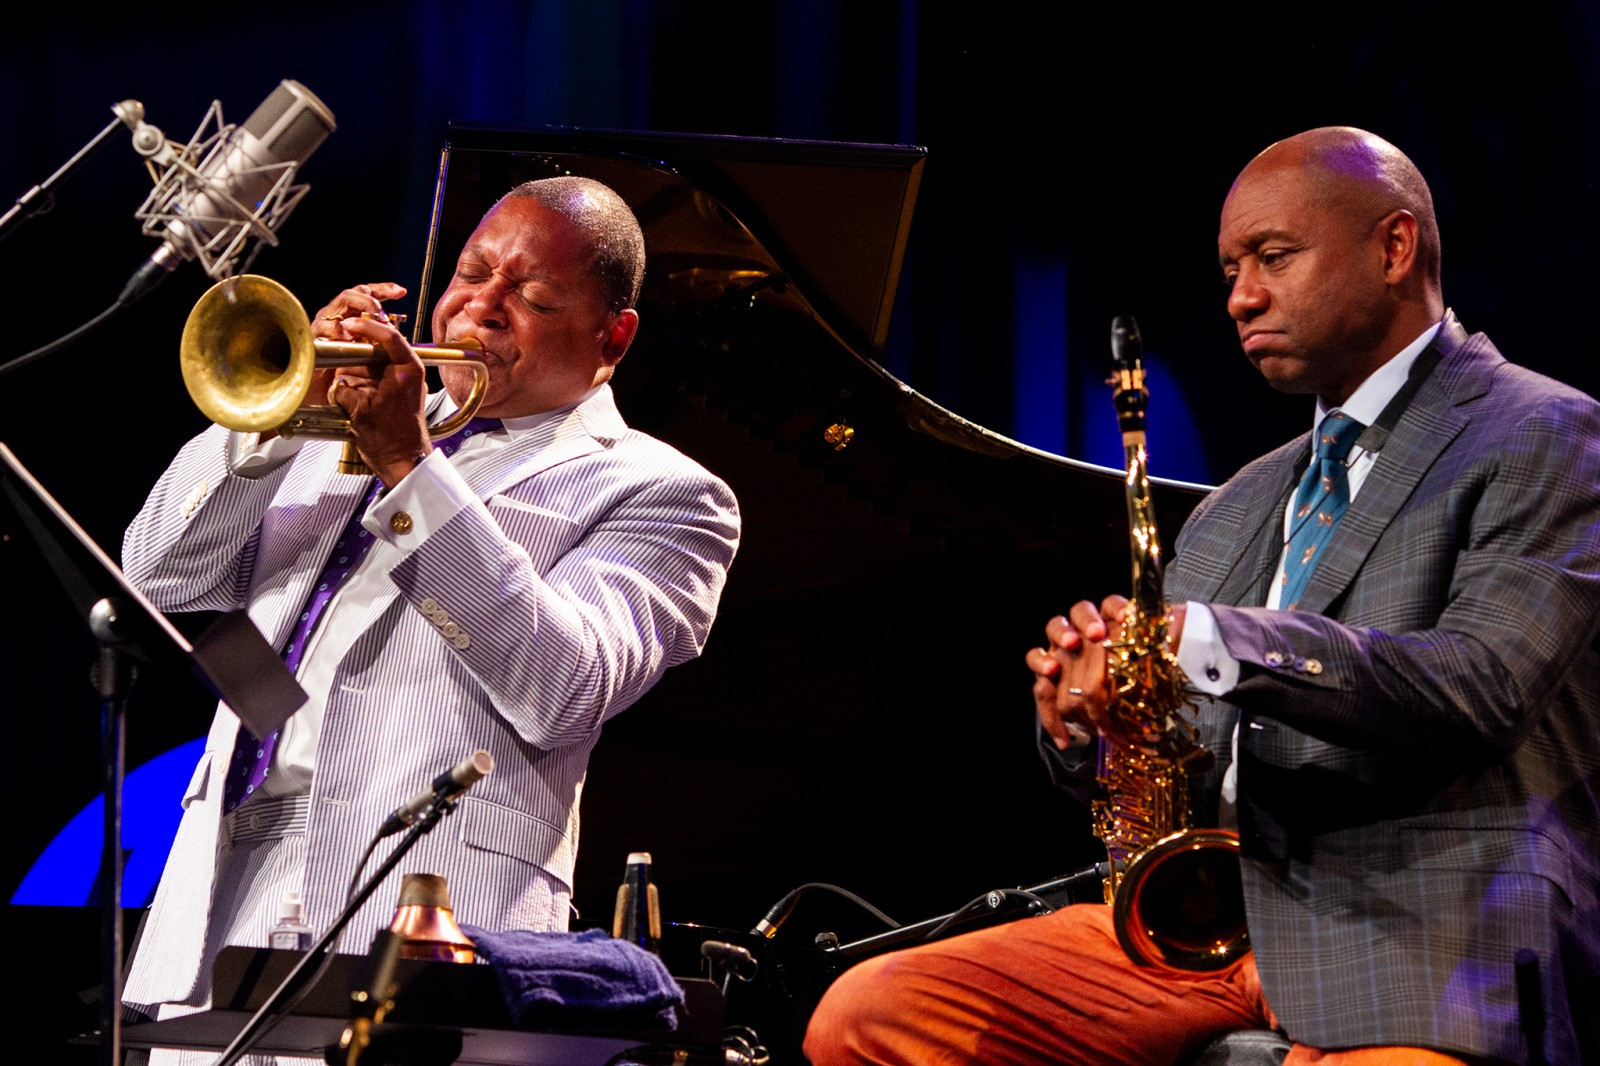 The Wynton Marsalis Quintet at Jazz in Marciac 2018 (sound